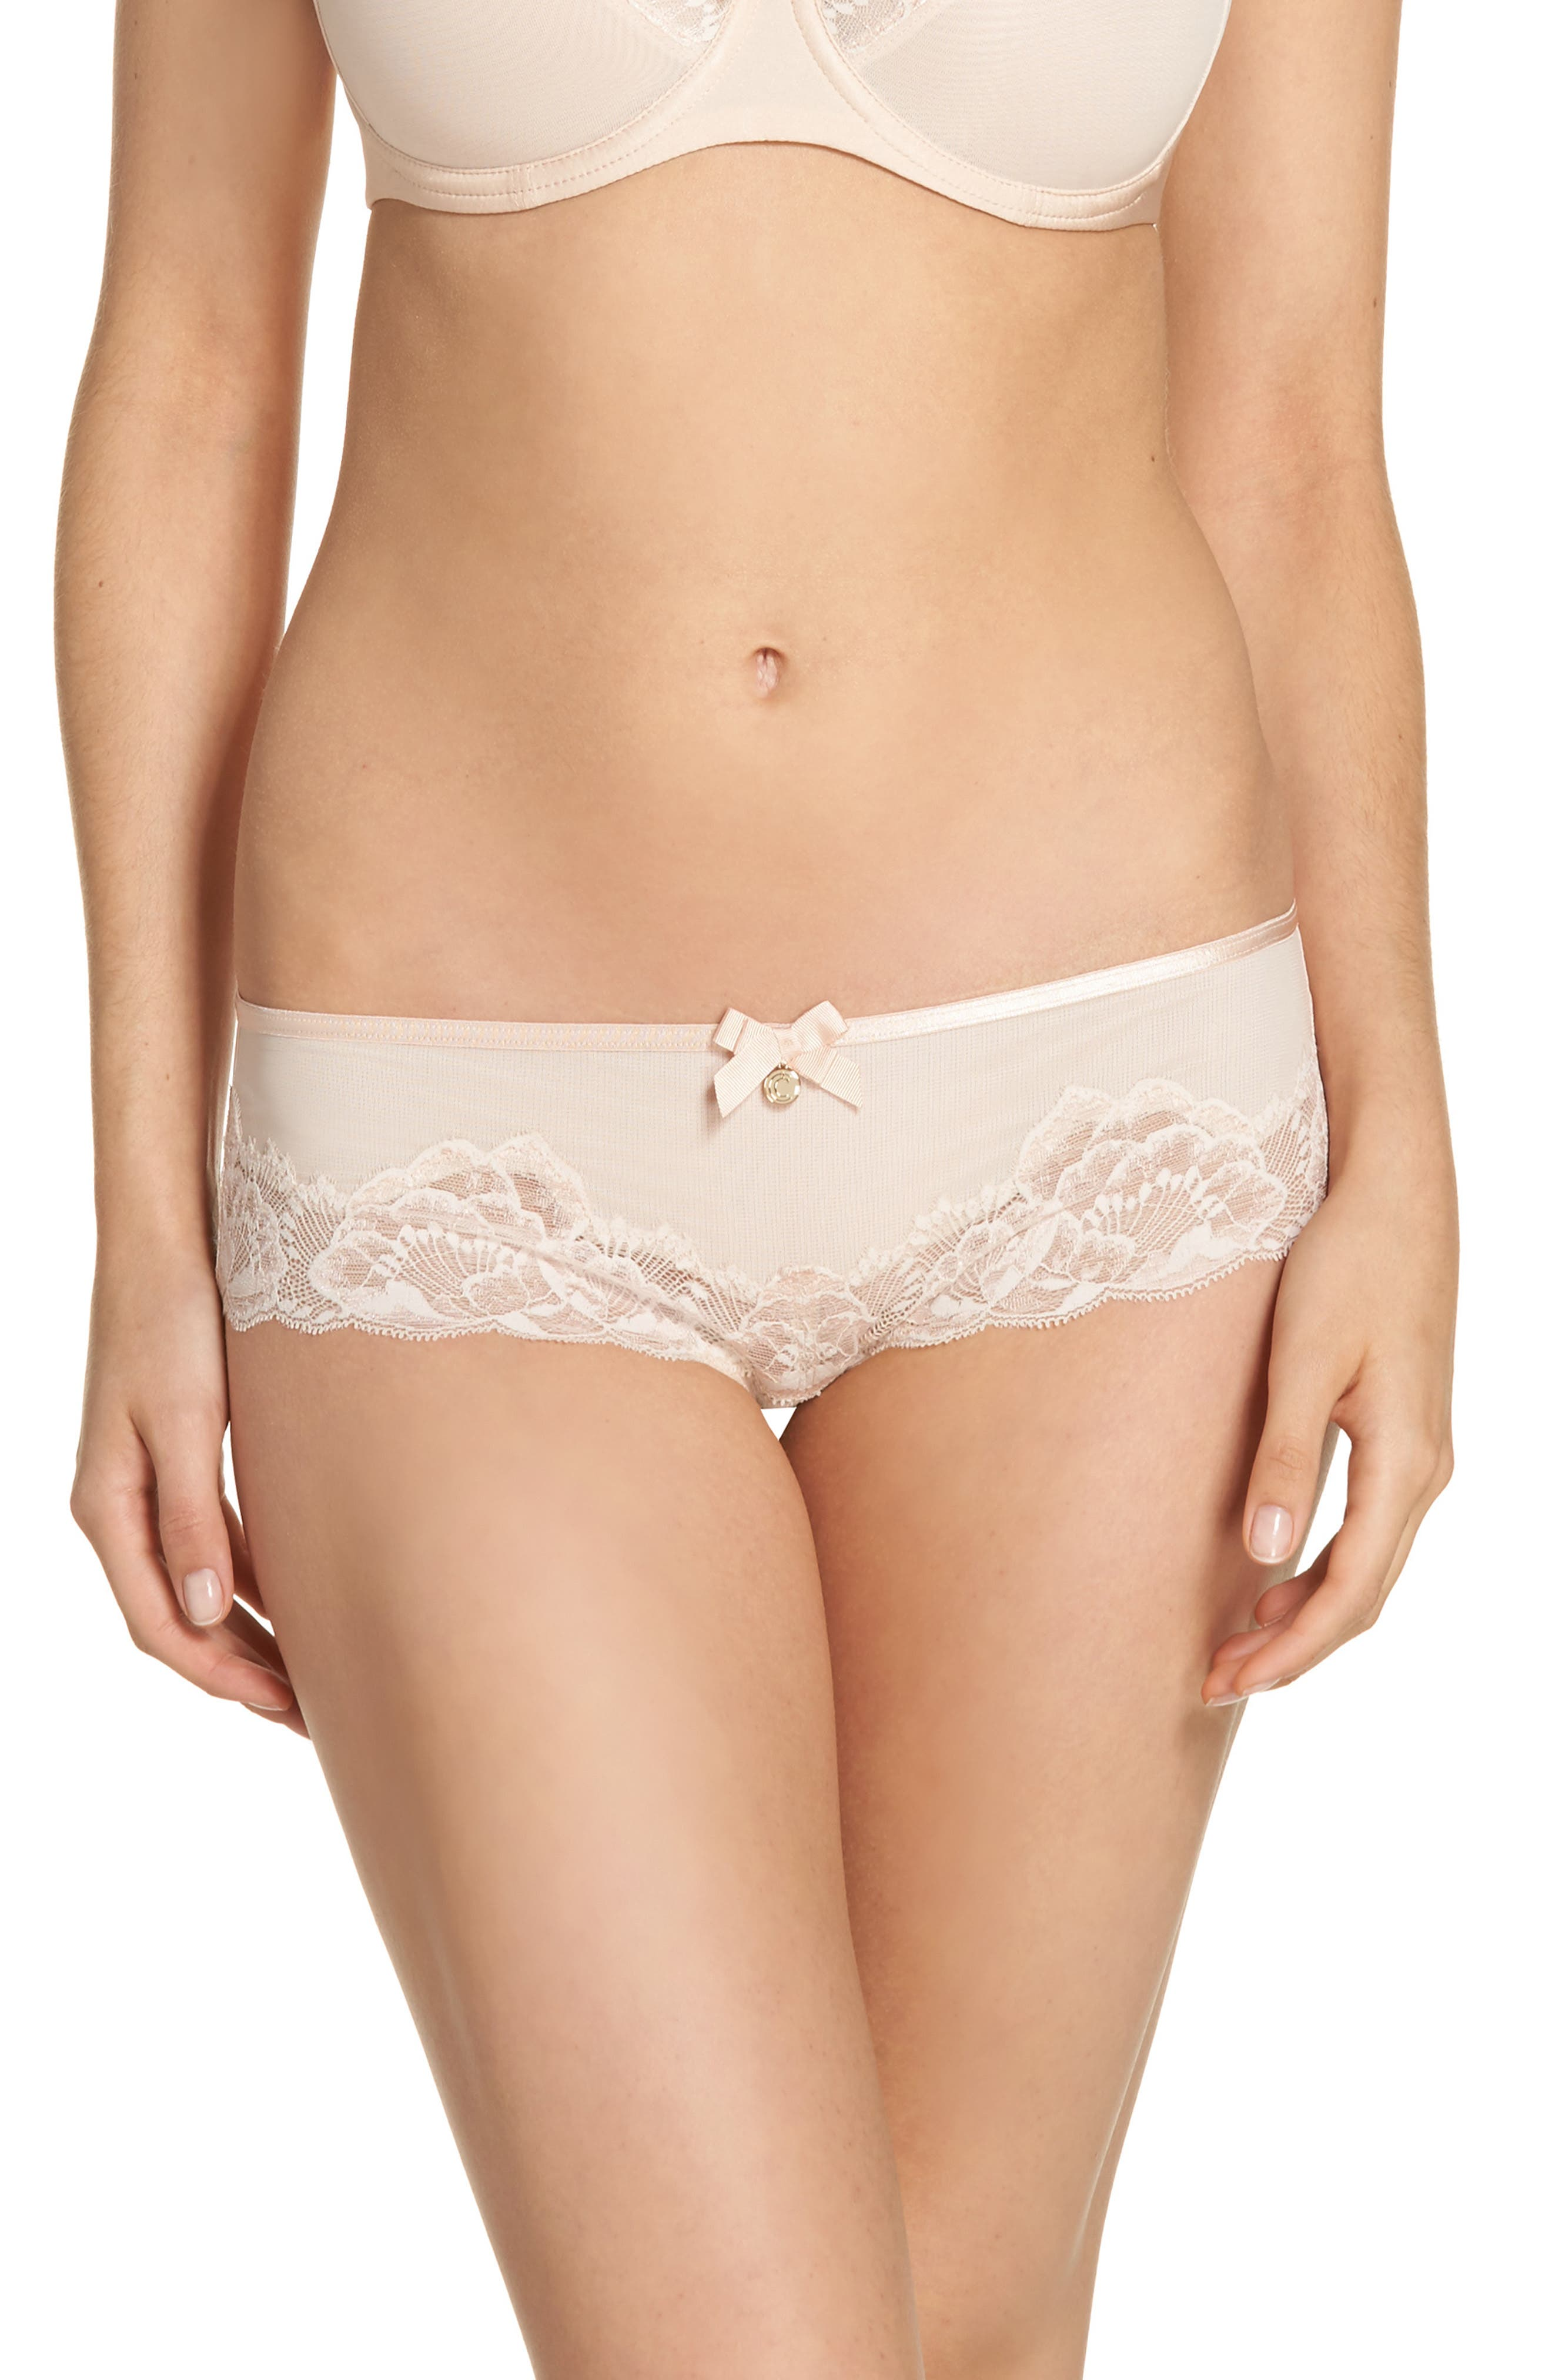 Orangerie Hipster Panties,                         Main,                         color, Skin Rose